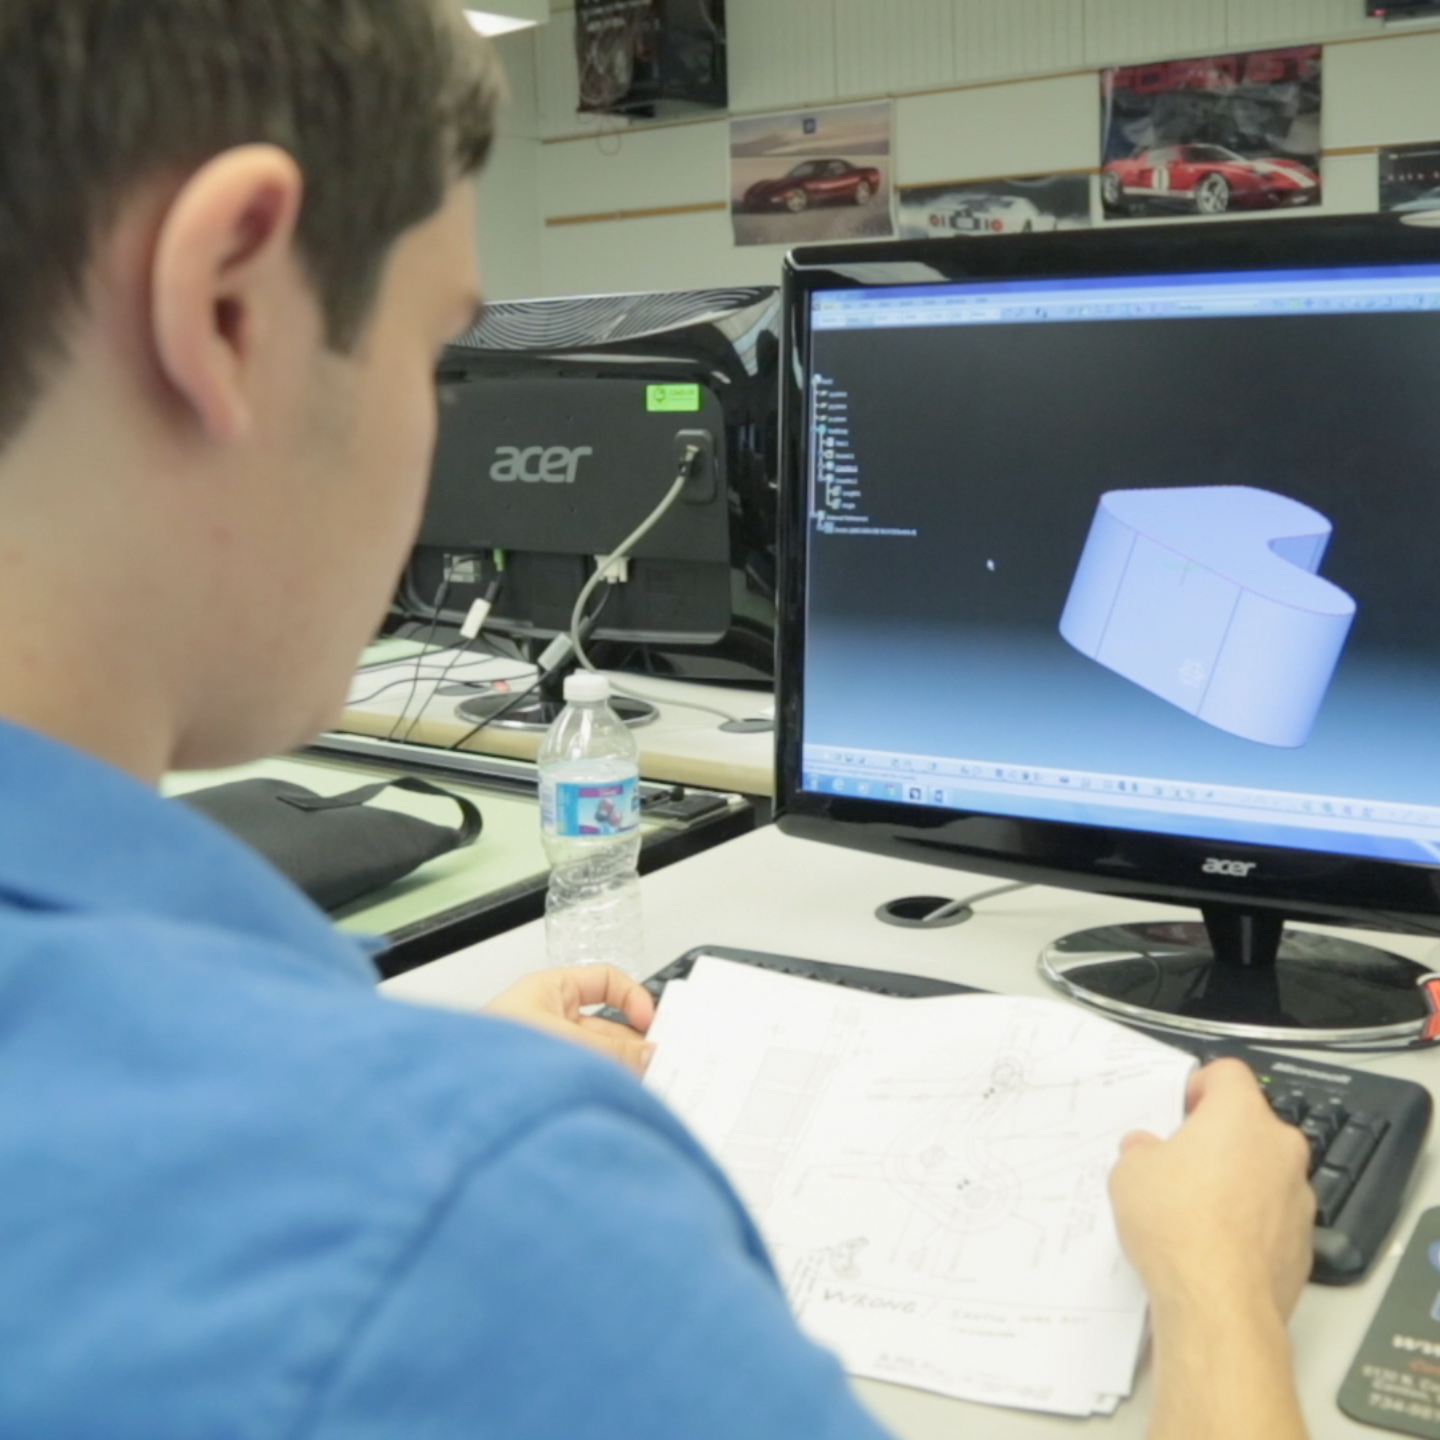 Student diligently modeling a part on CAD computer program